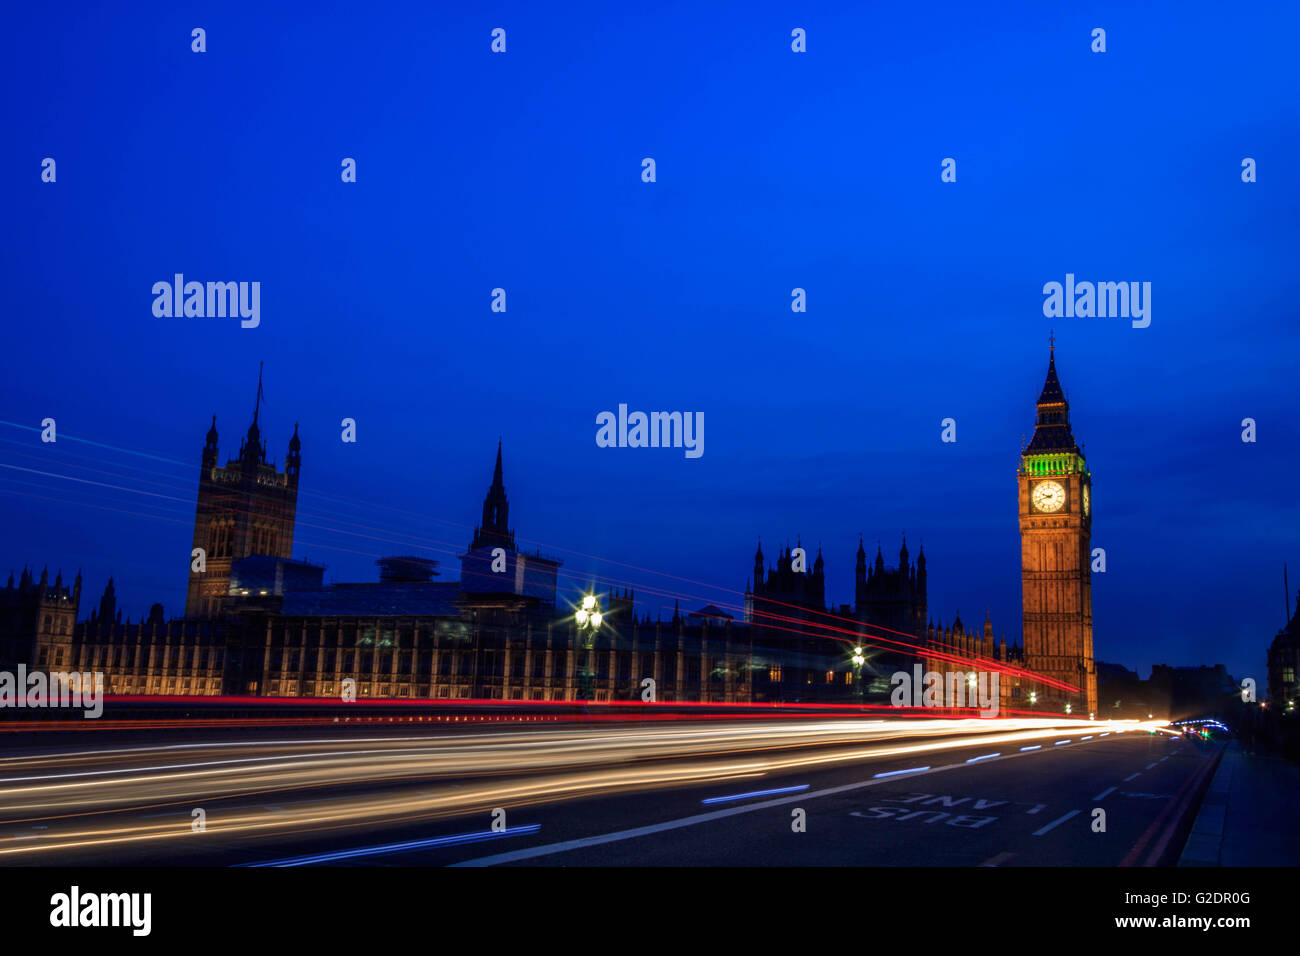 Palace of Westminster in London, and the Big Ben at night with vehicle leaving a trail along the road, with a clear - Stock Image